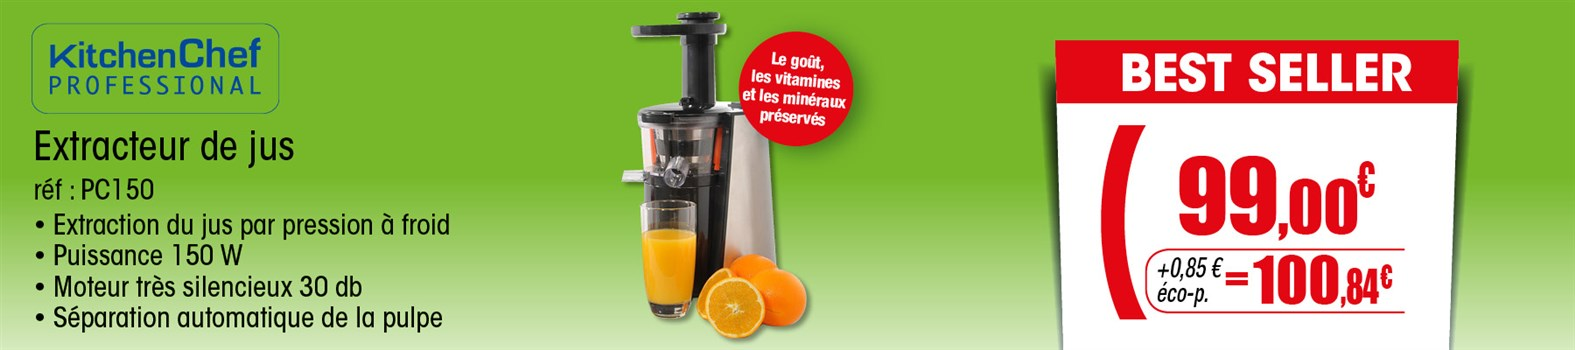 Extracteur de jus KitchenChef PC150